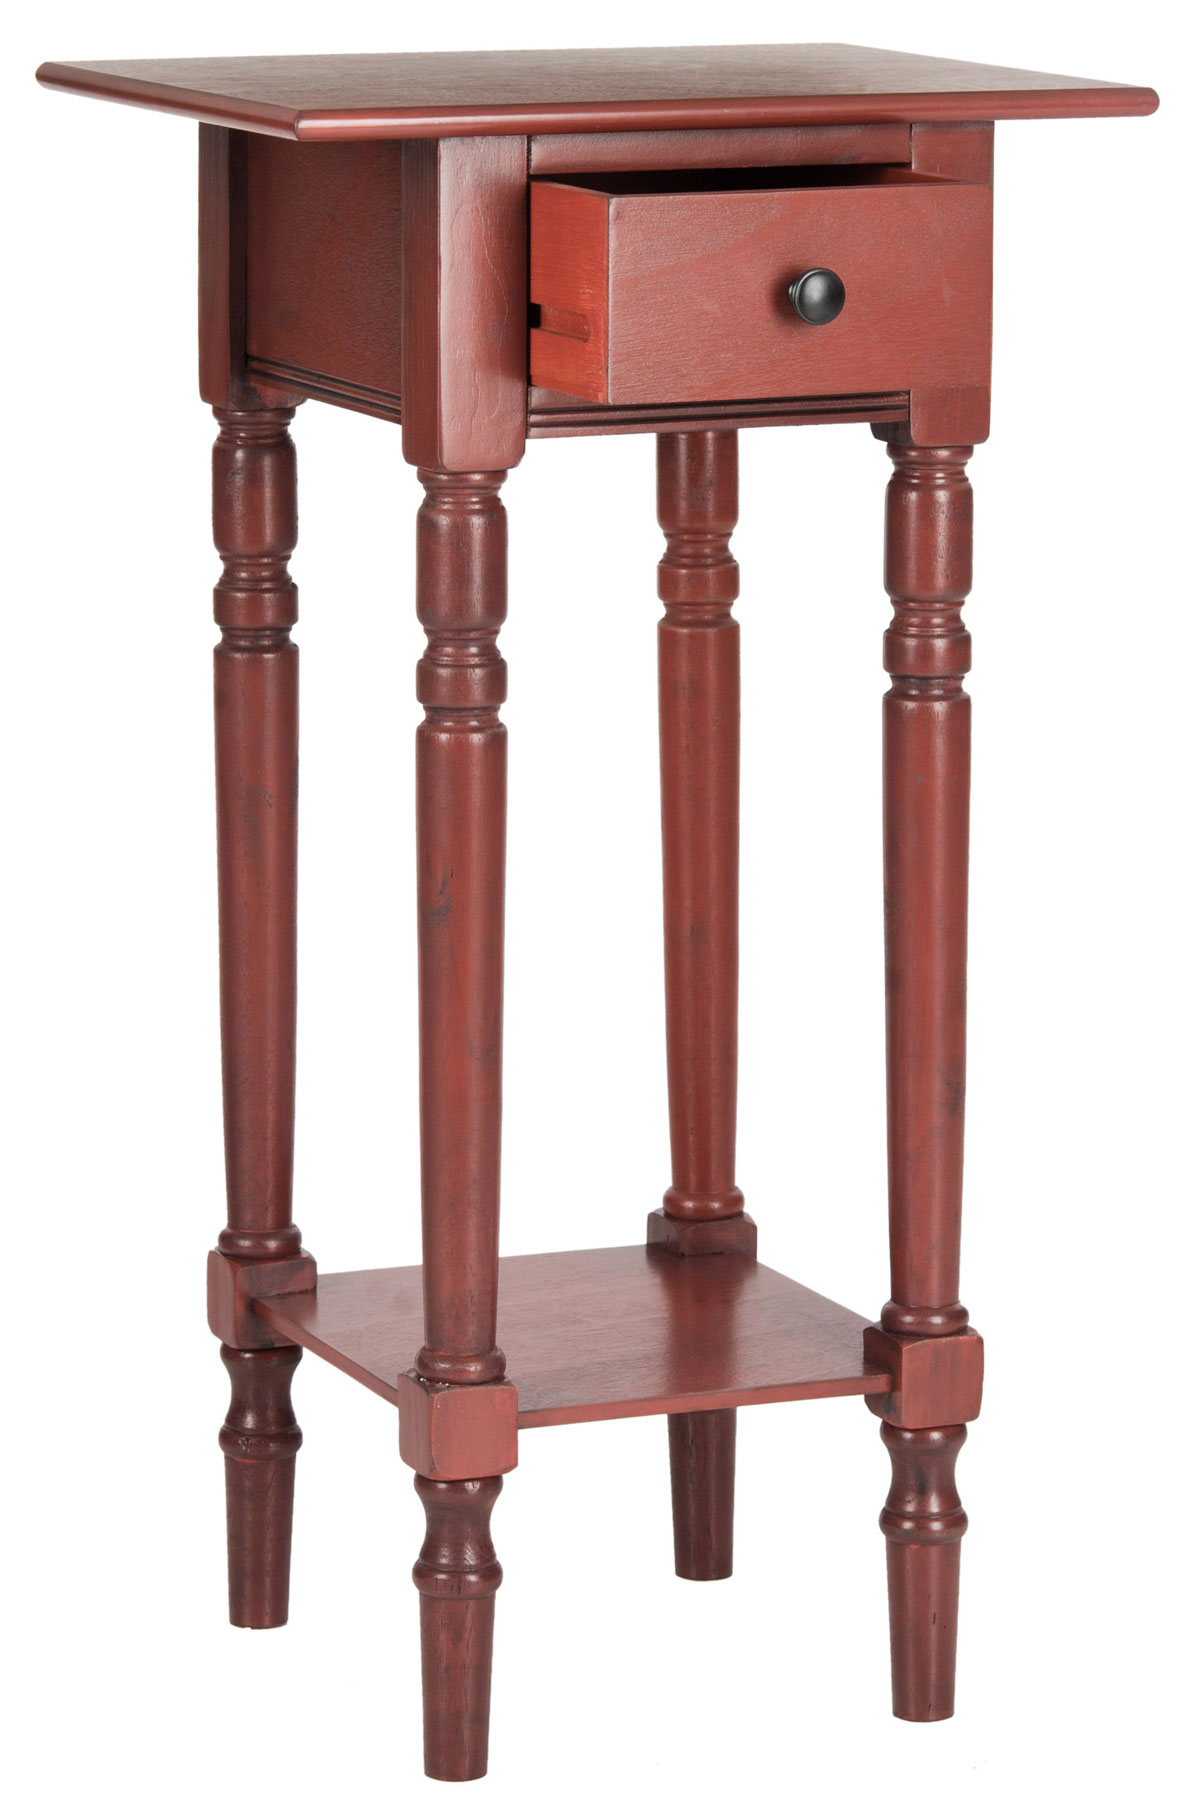 accent tables furniture safavieh side red table wood large enough hold essentials like glasses reading lamp and books sabrina pine with pretty finish doesn need much space shine